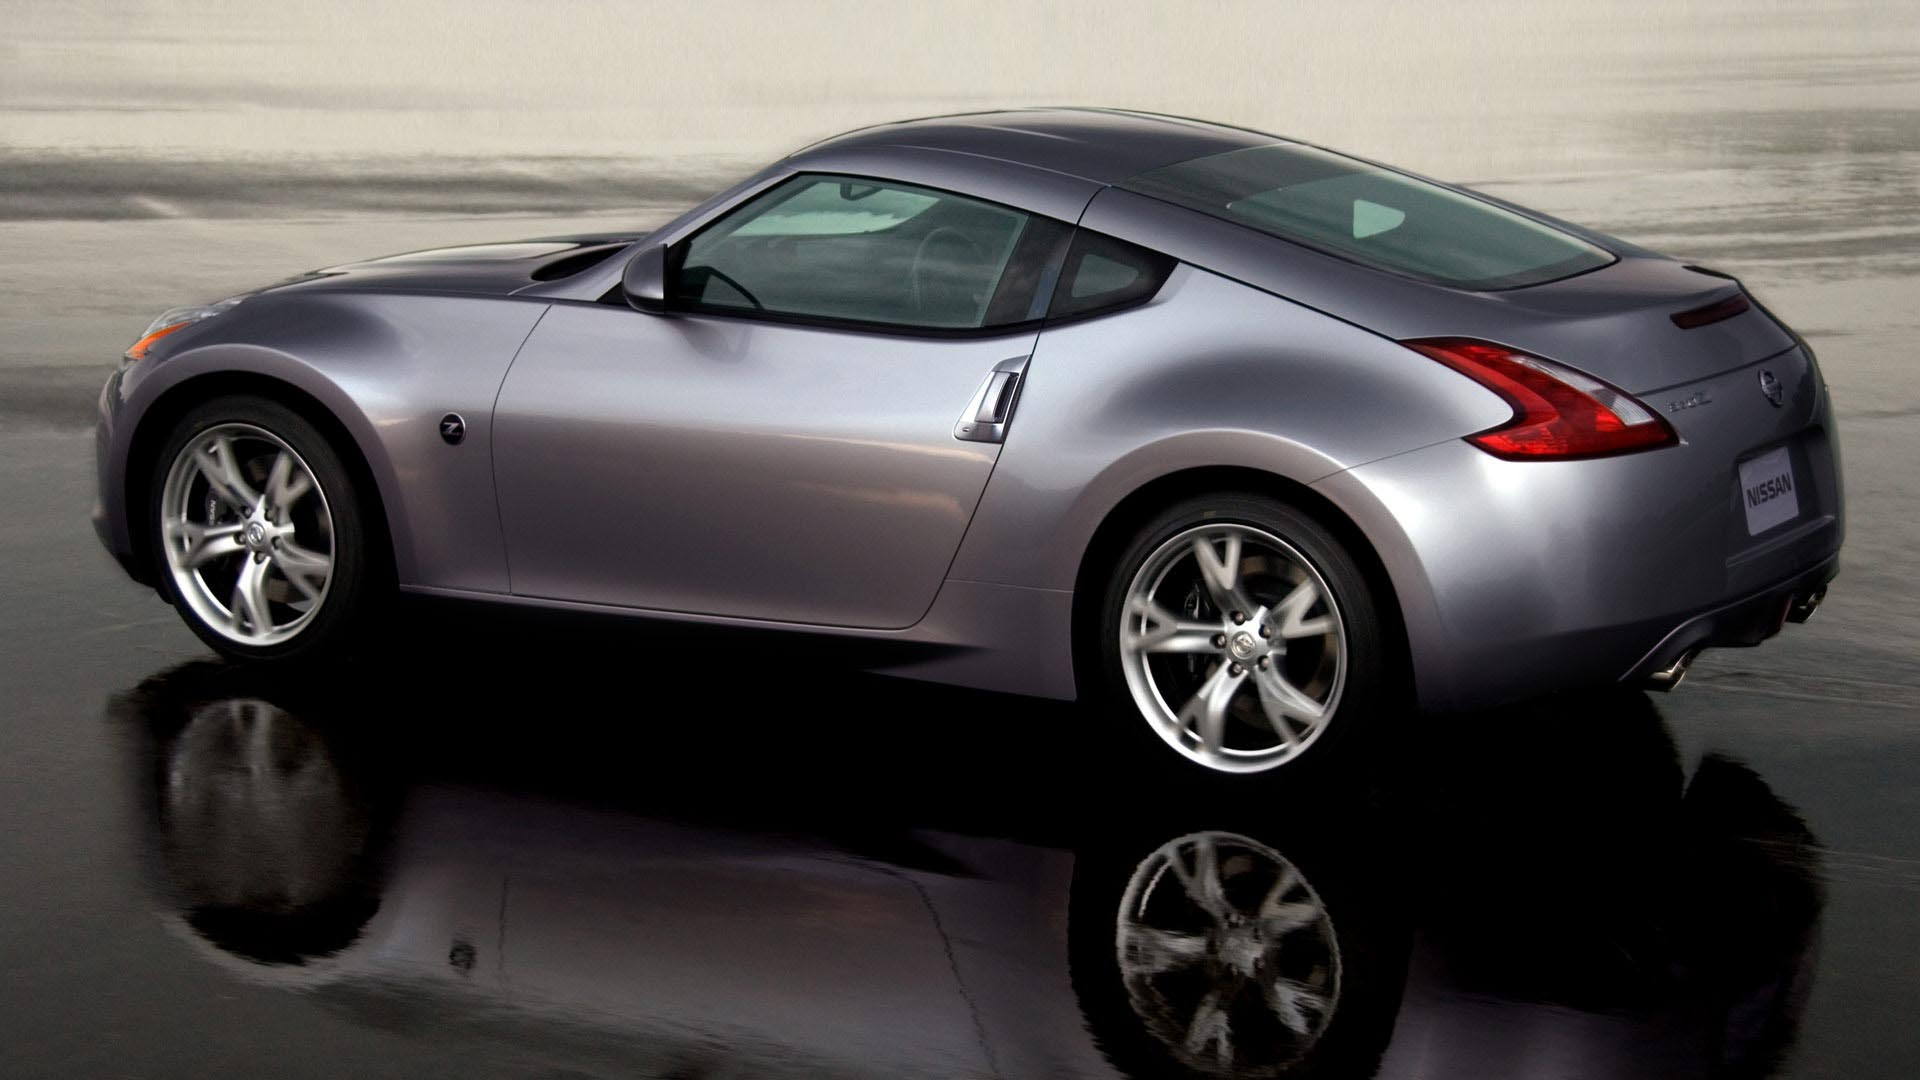 Nissan 370Z HD Wallpaper FullHDWpp   Full HD Wallpapers 1920x1080 1920x1080